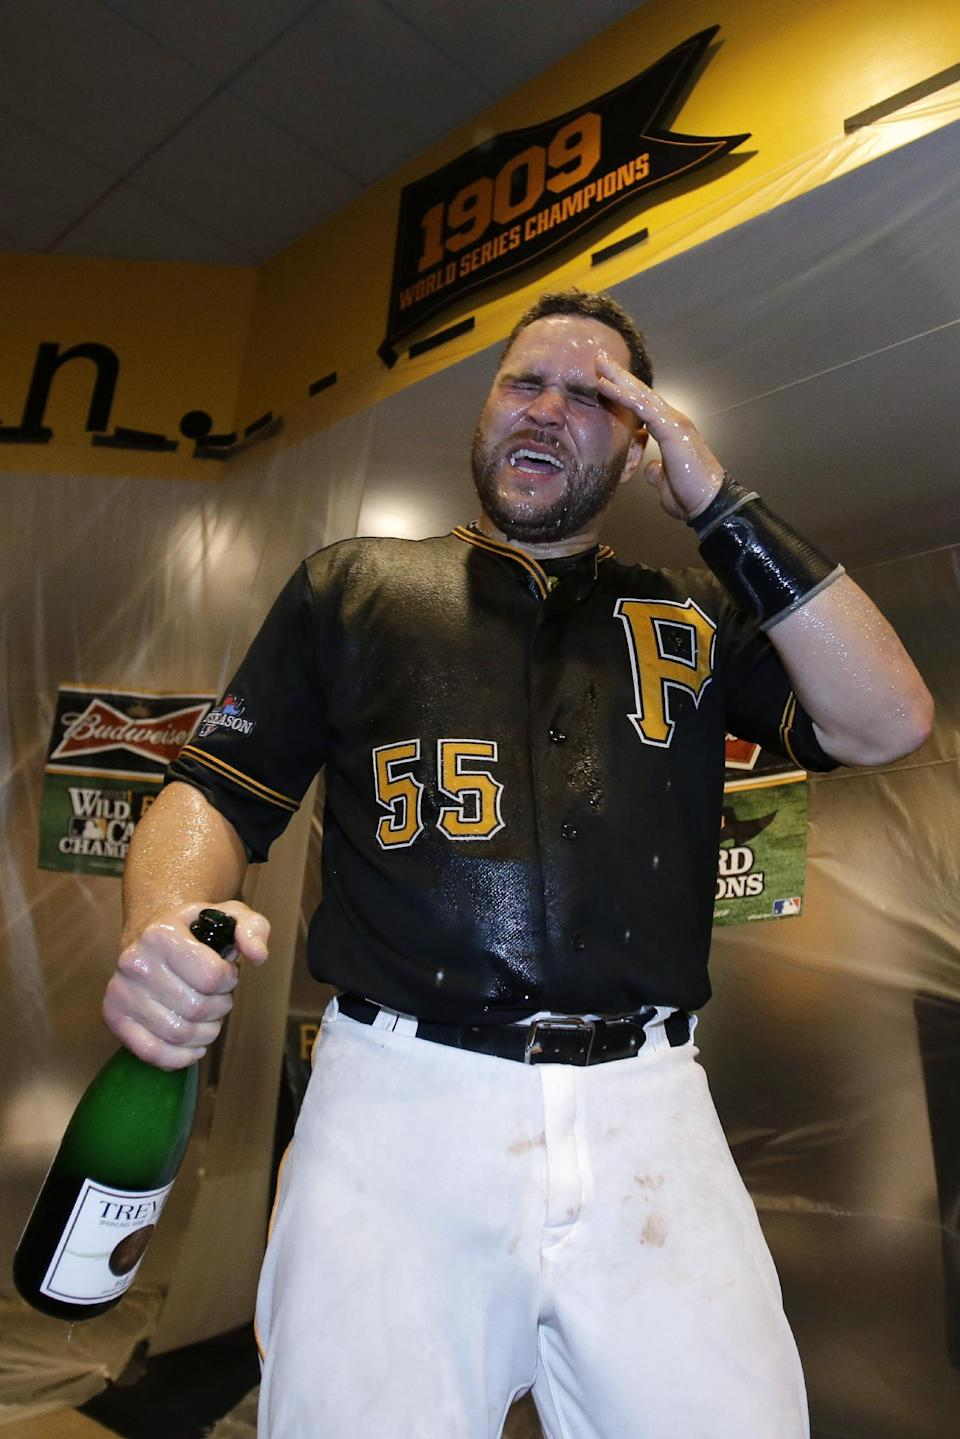 Pirates beat Reds 6-2 in NL wild-card game